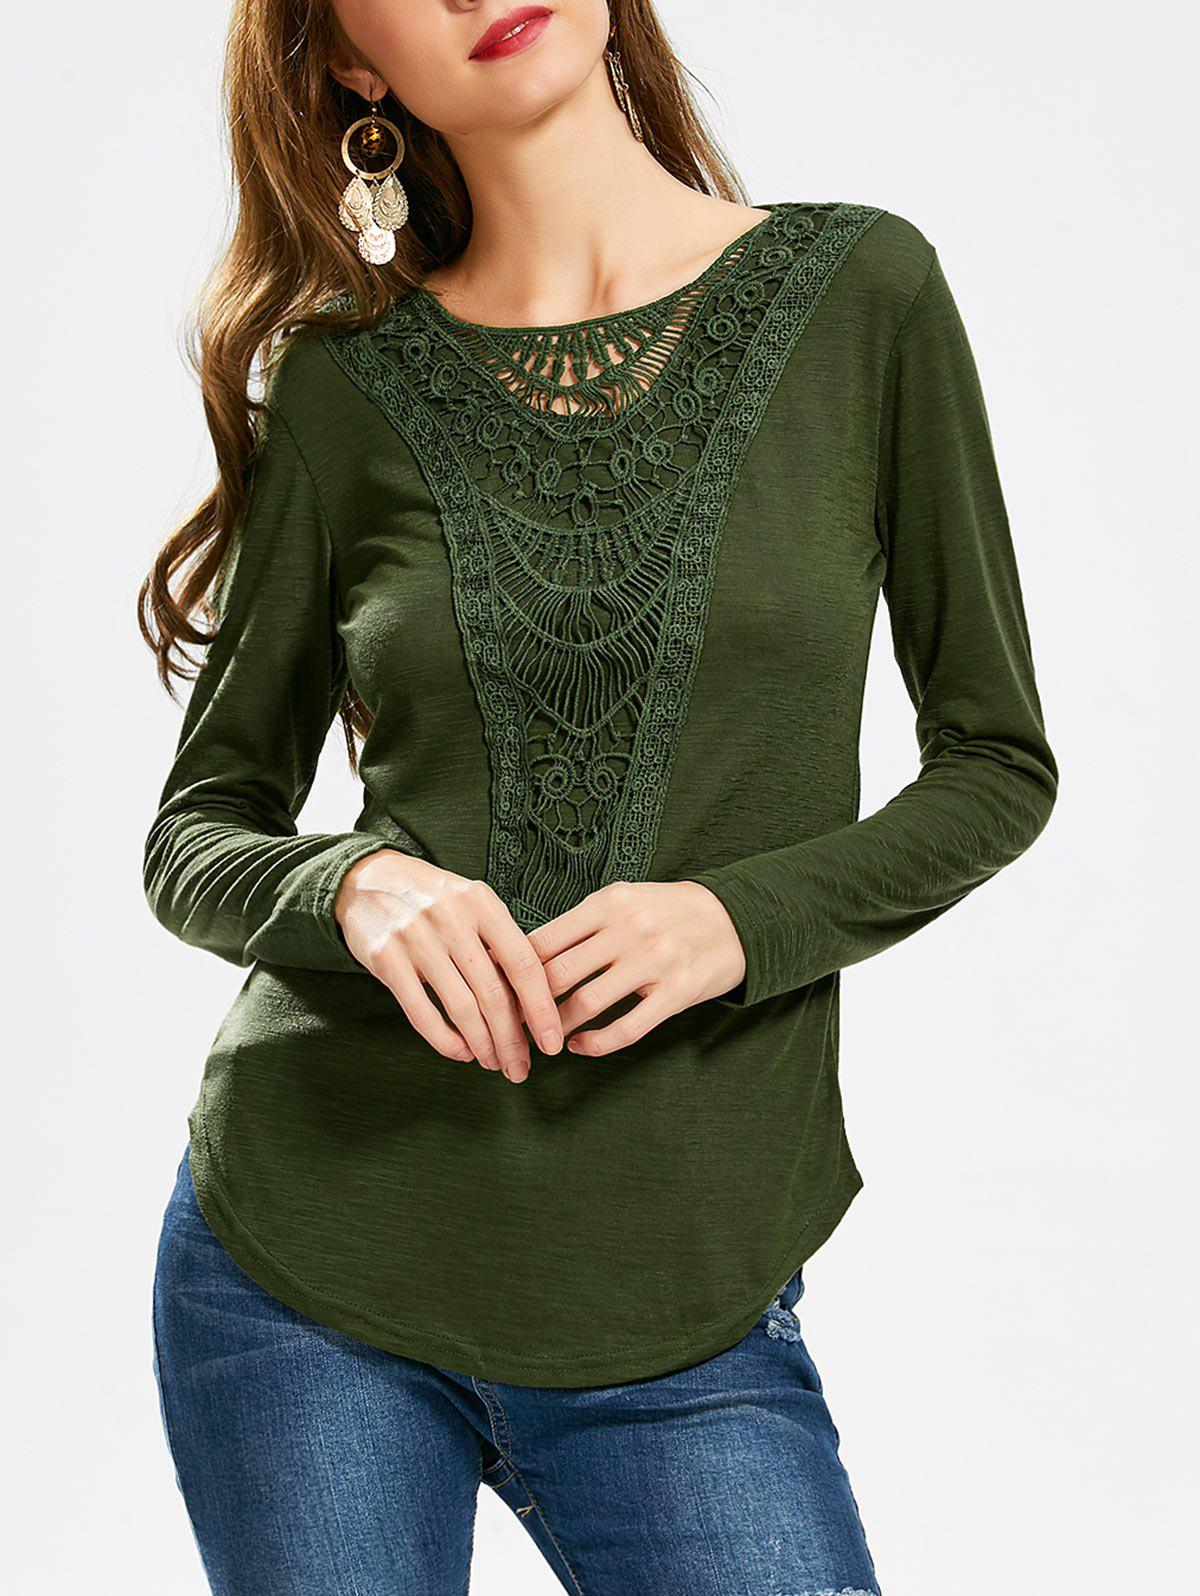 Concise Scoop Neck Hollow Out Crochet Spliced Solid Color T-Shirt For Women - ARMY GREEN XL